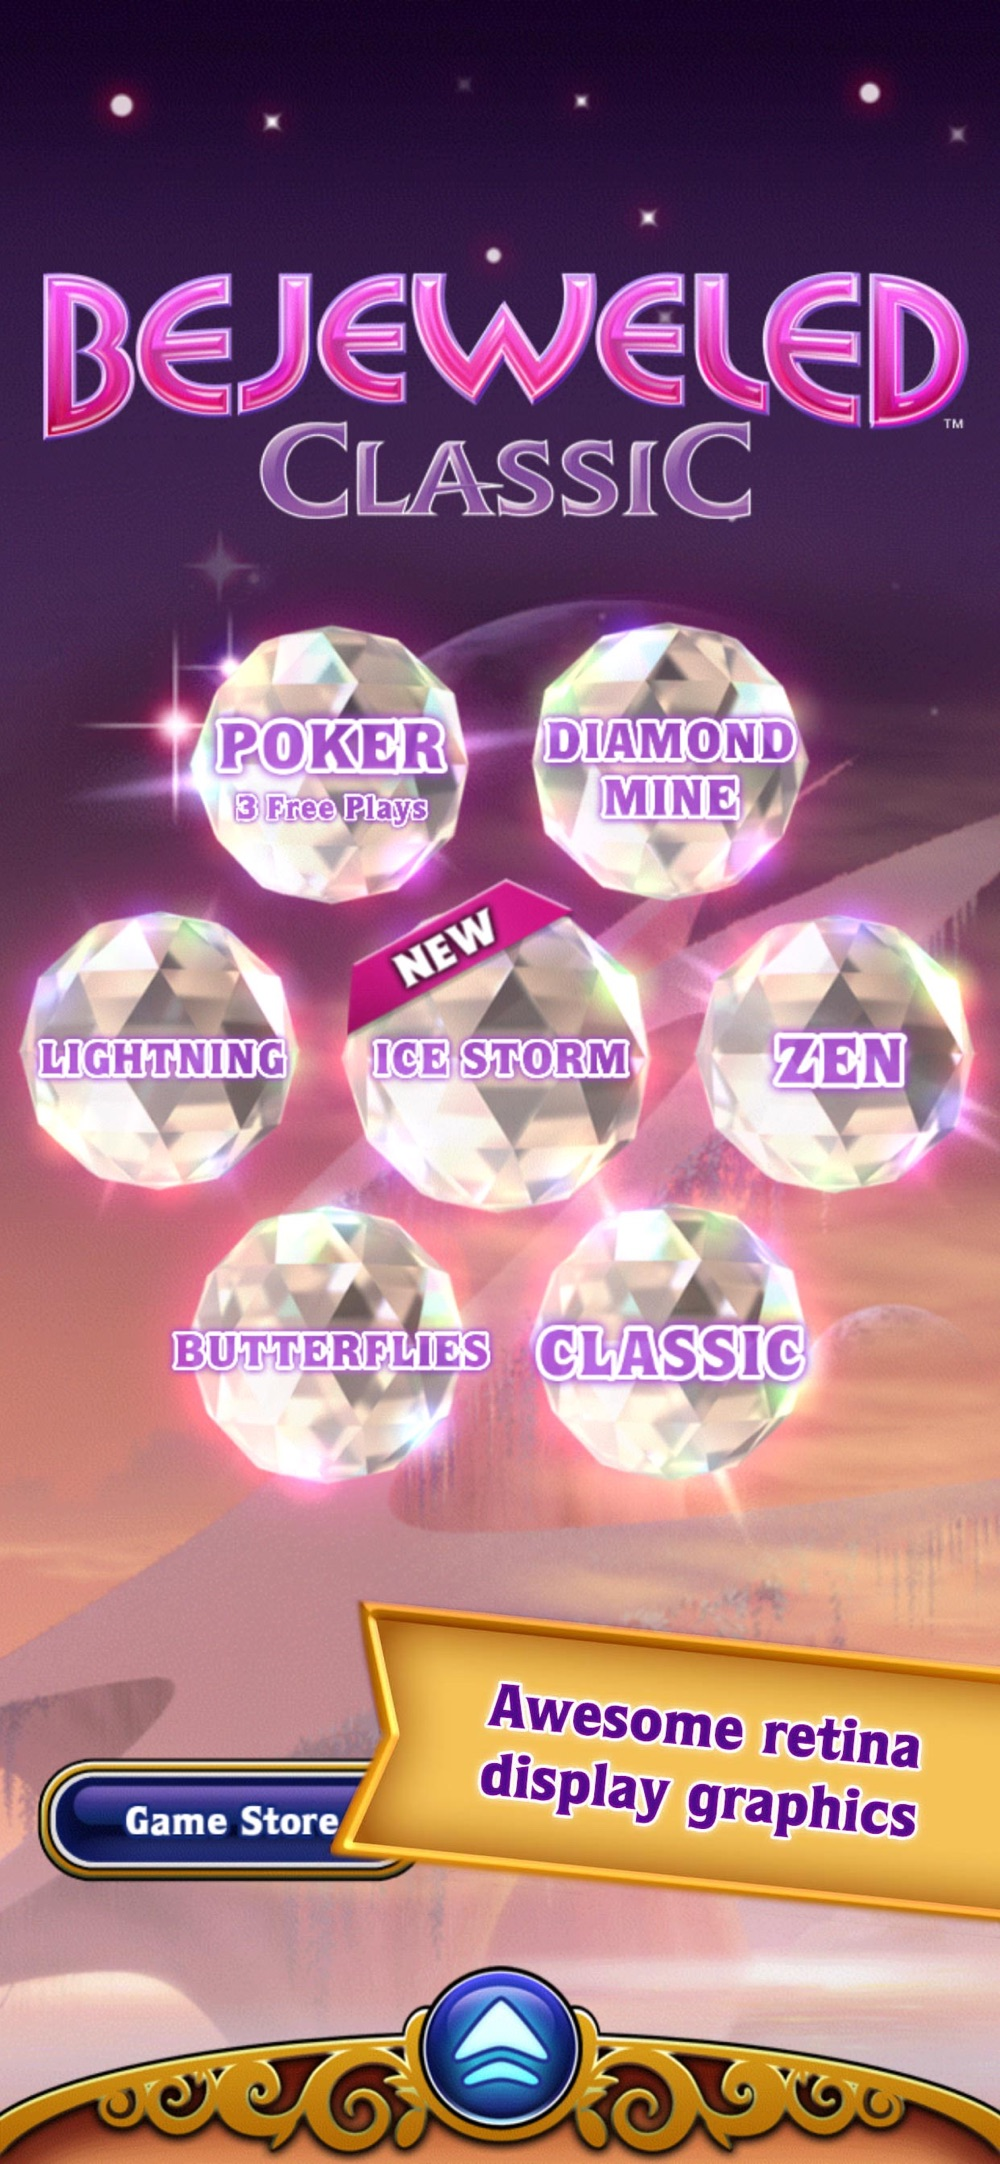 Bejeweled Classic cheat codes